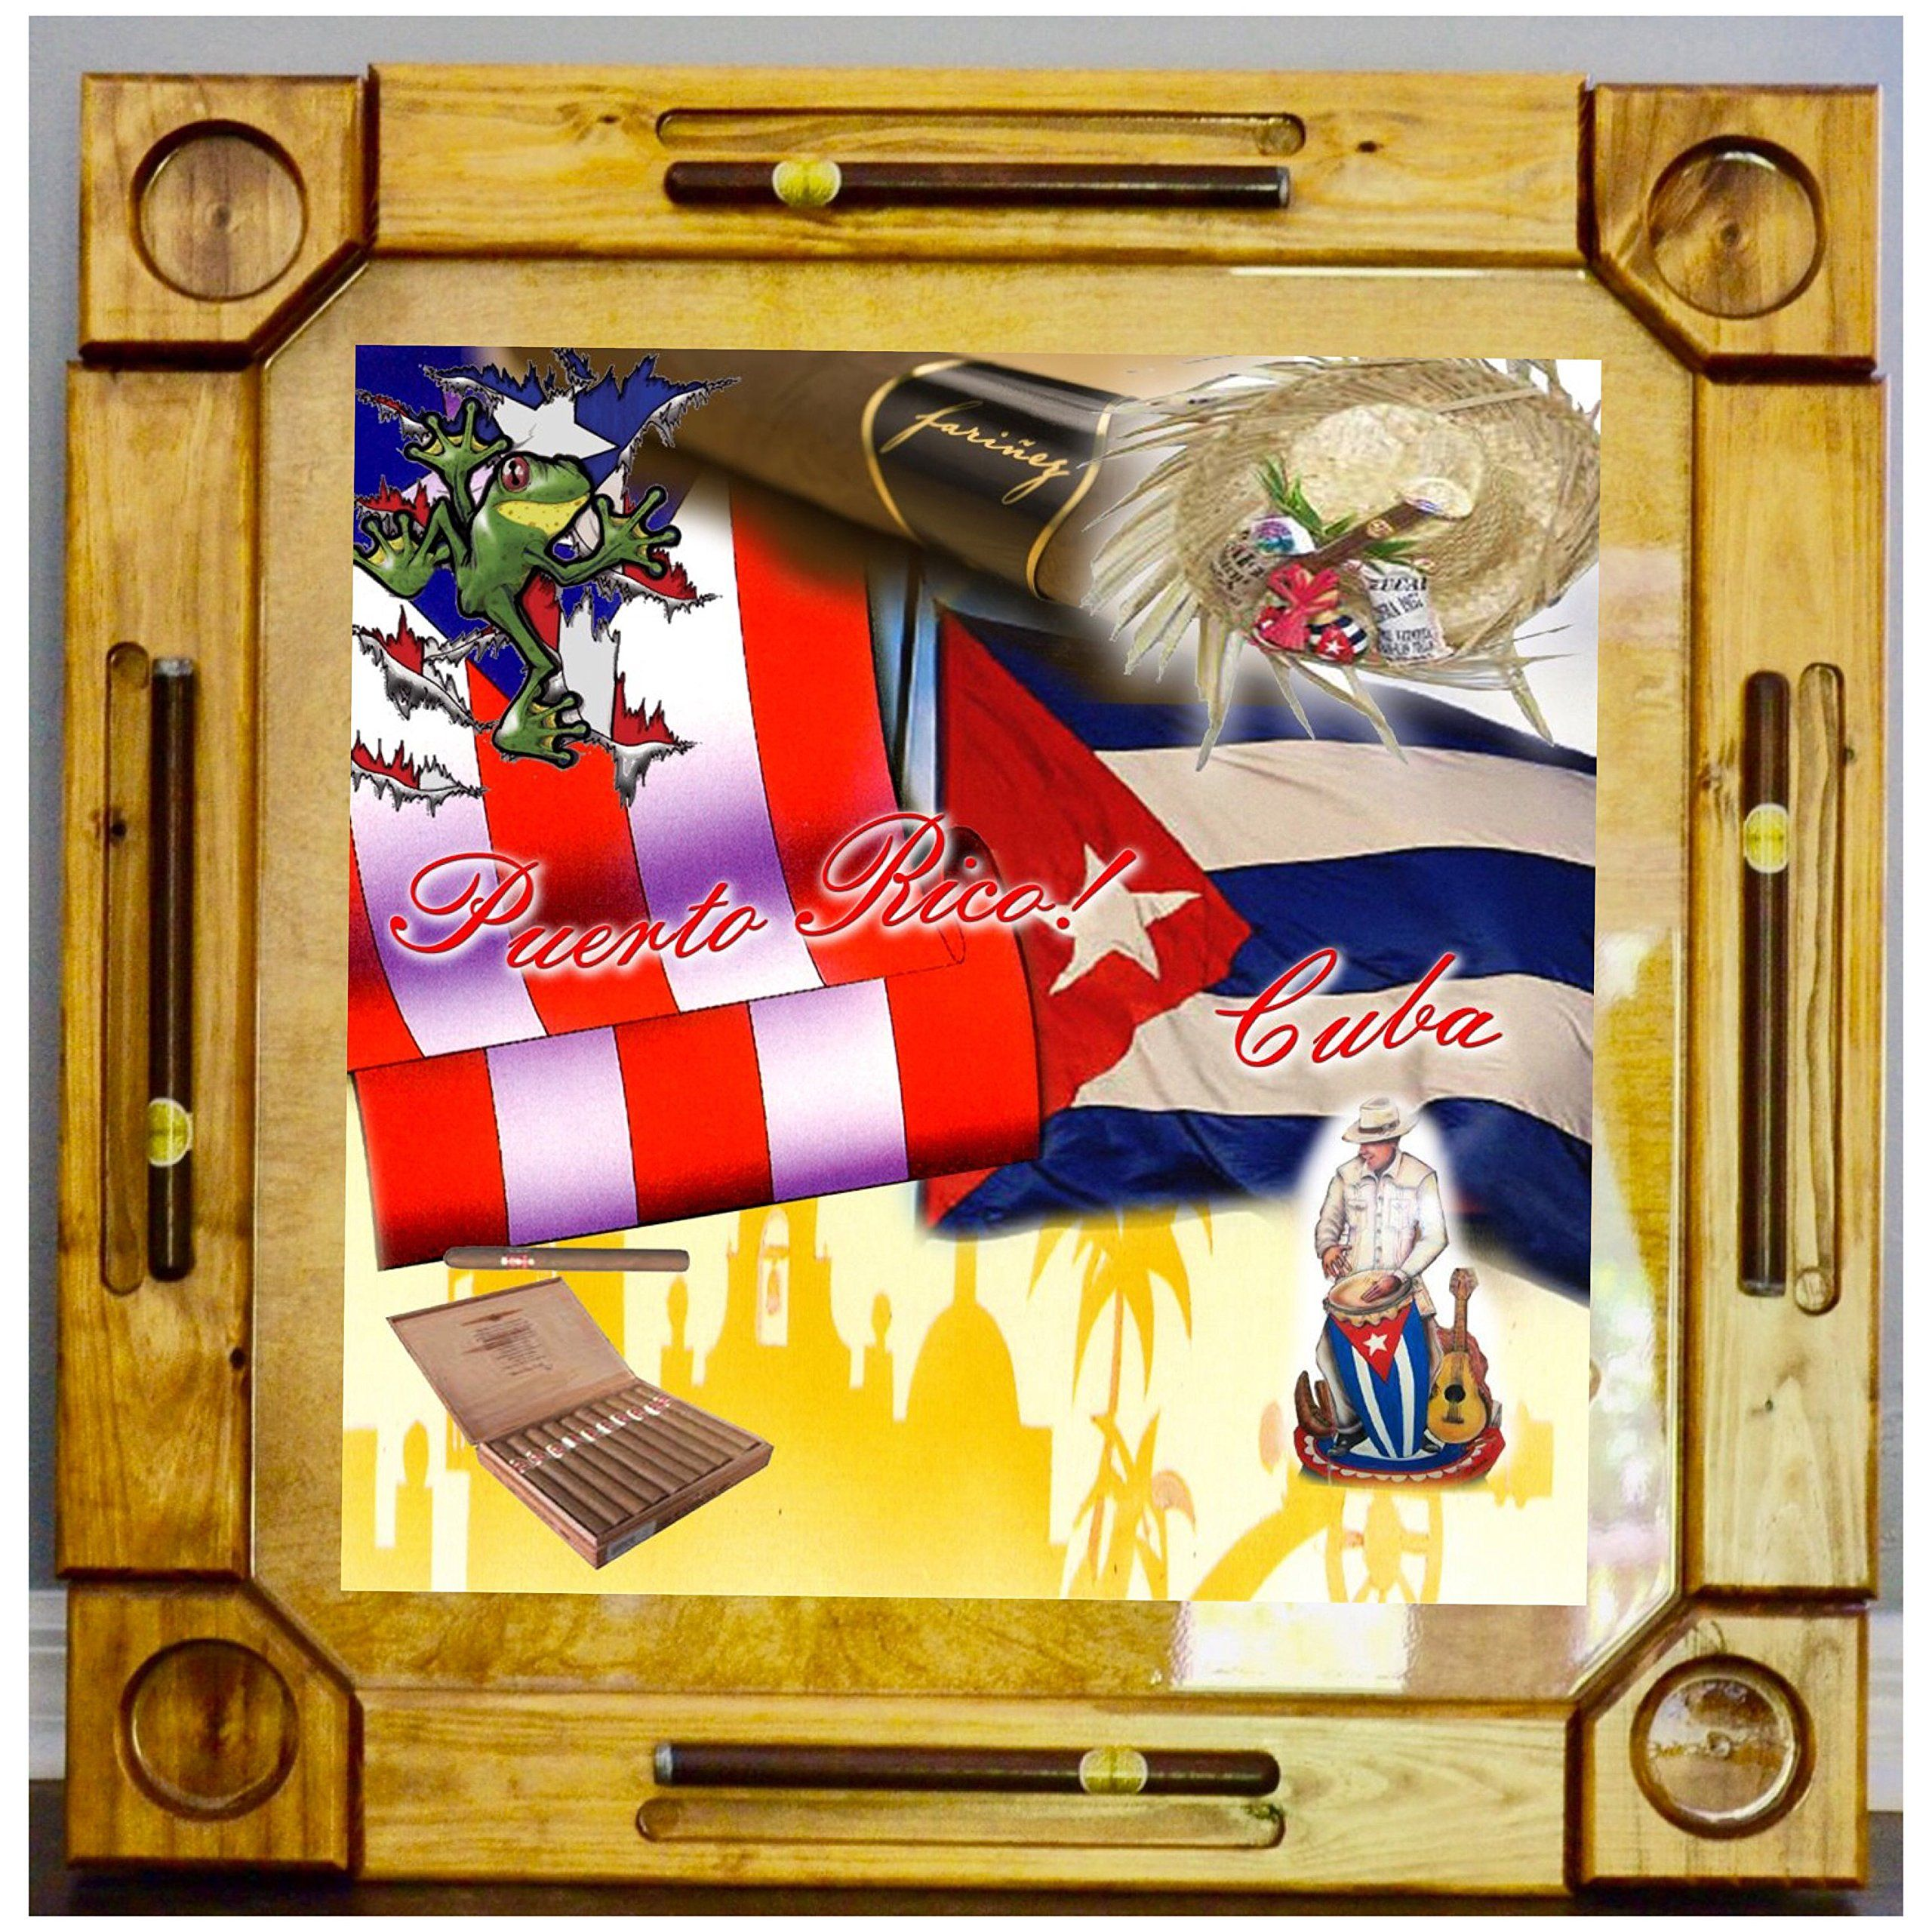 Wooden/wood Dominoes/domino Table/mesa Custom Made Cuba And Puerto Rico  Flags Made In USA. Made From Solid And Hight Quality Wood ,this Beautiful  Dominoes ...